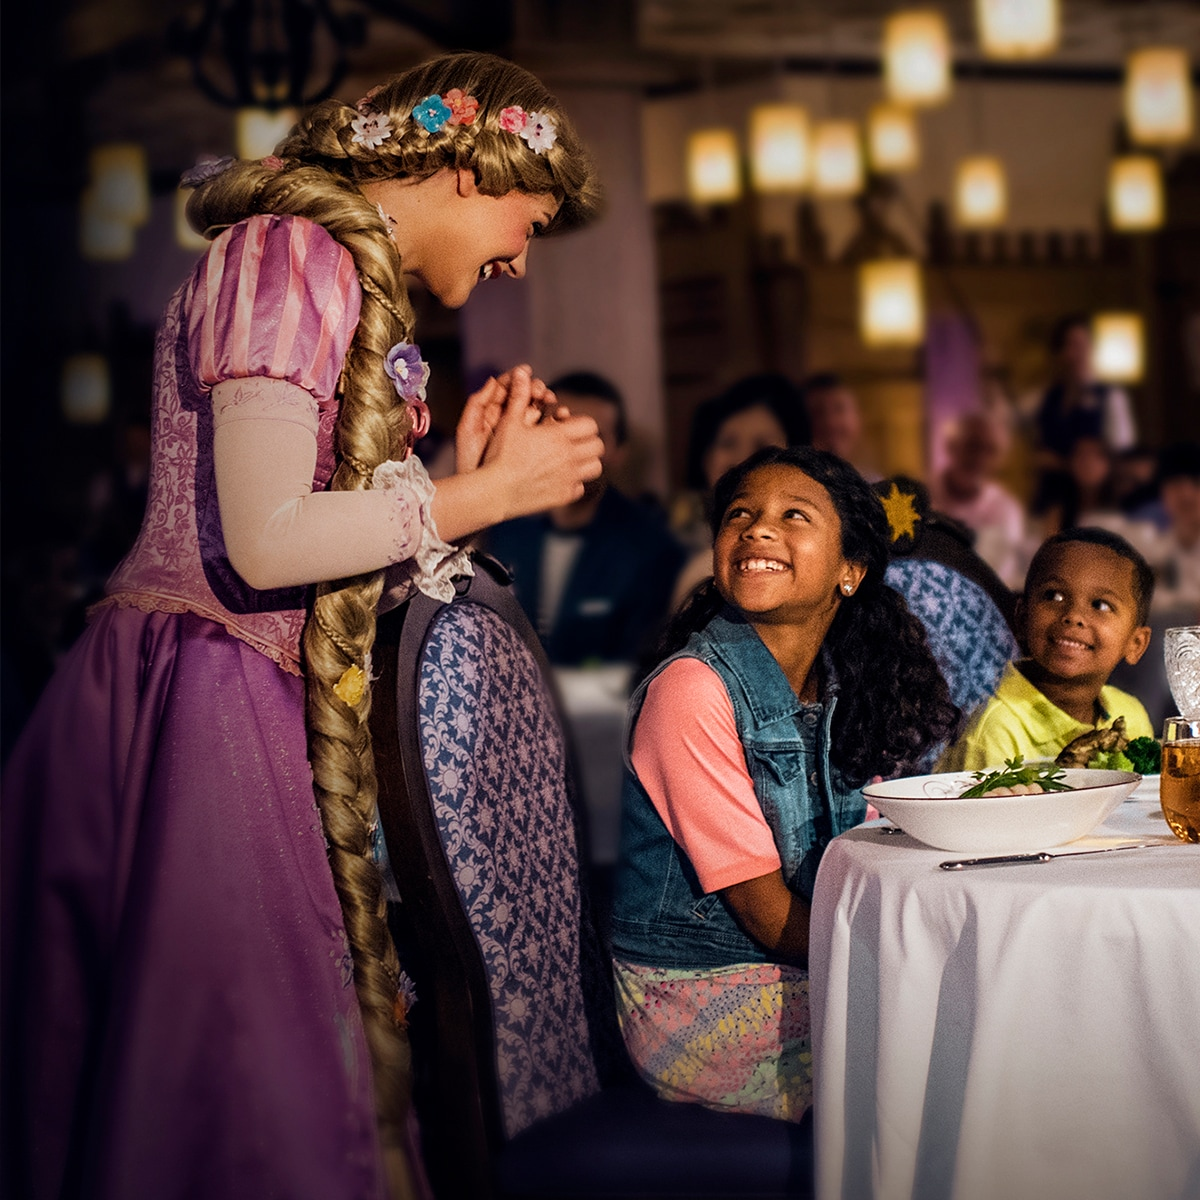 Rapunzel stood next to a family sat at a table